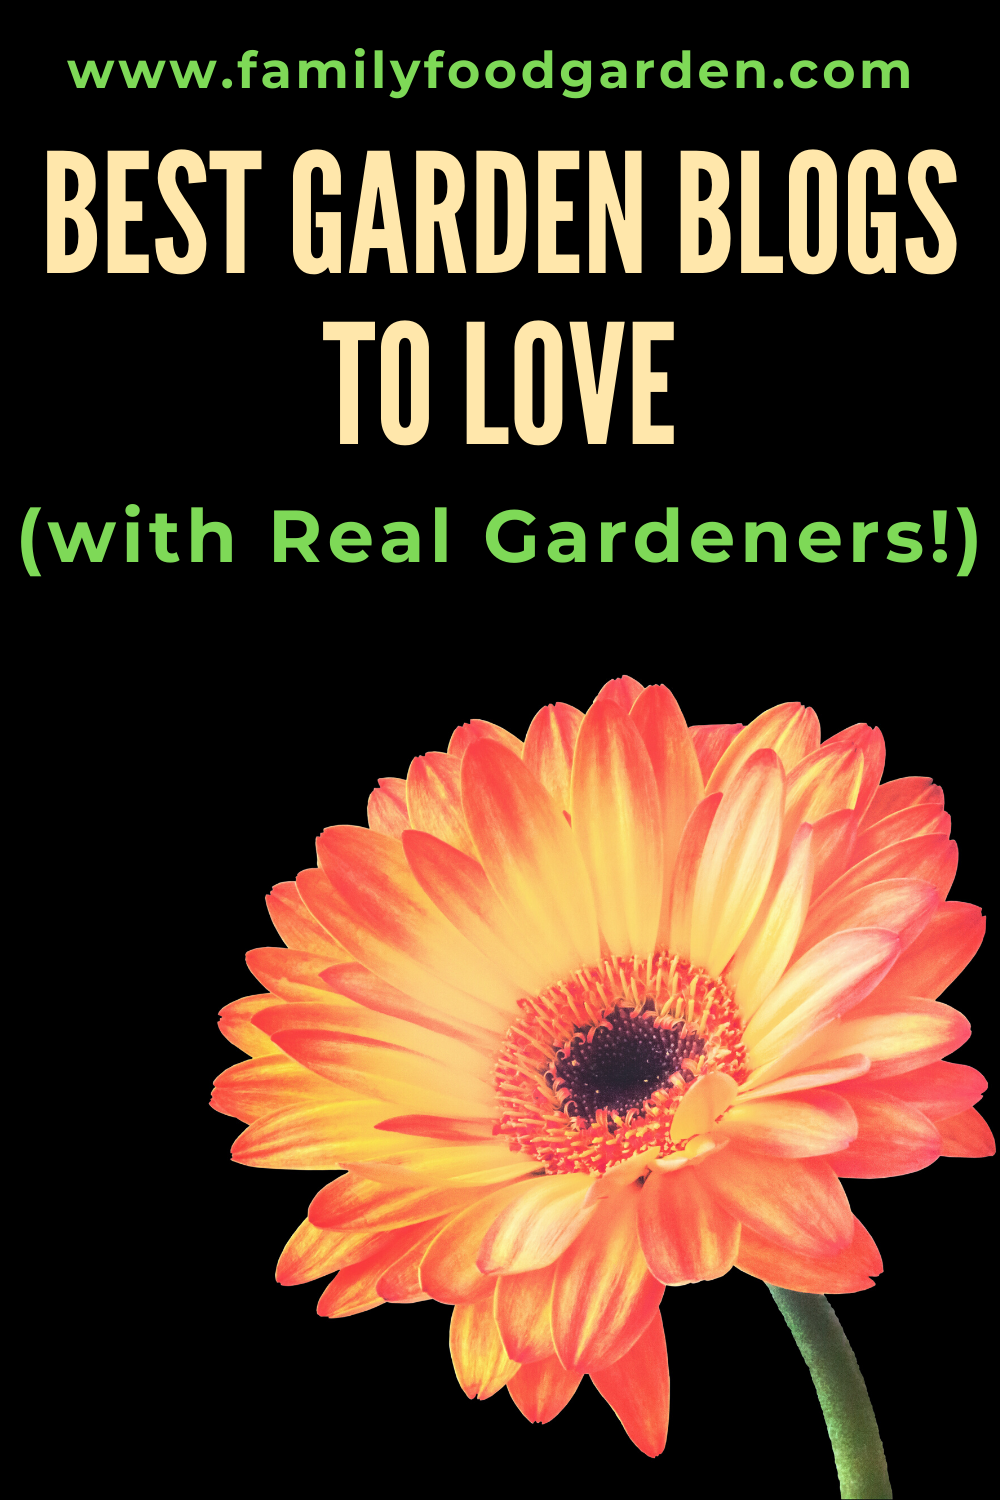 Here are the best garden blogs to love with real gardeners. Some of these garden blogs are vegetable gardeners, others flower gardeners and some permaculture. FInd more details on this pin! #permaculture #garden #gardeningtips #gardenblog #flowergardening #vegetablegardening